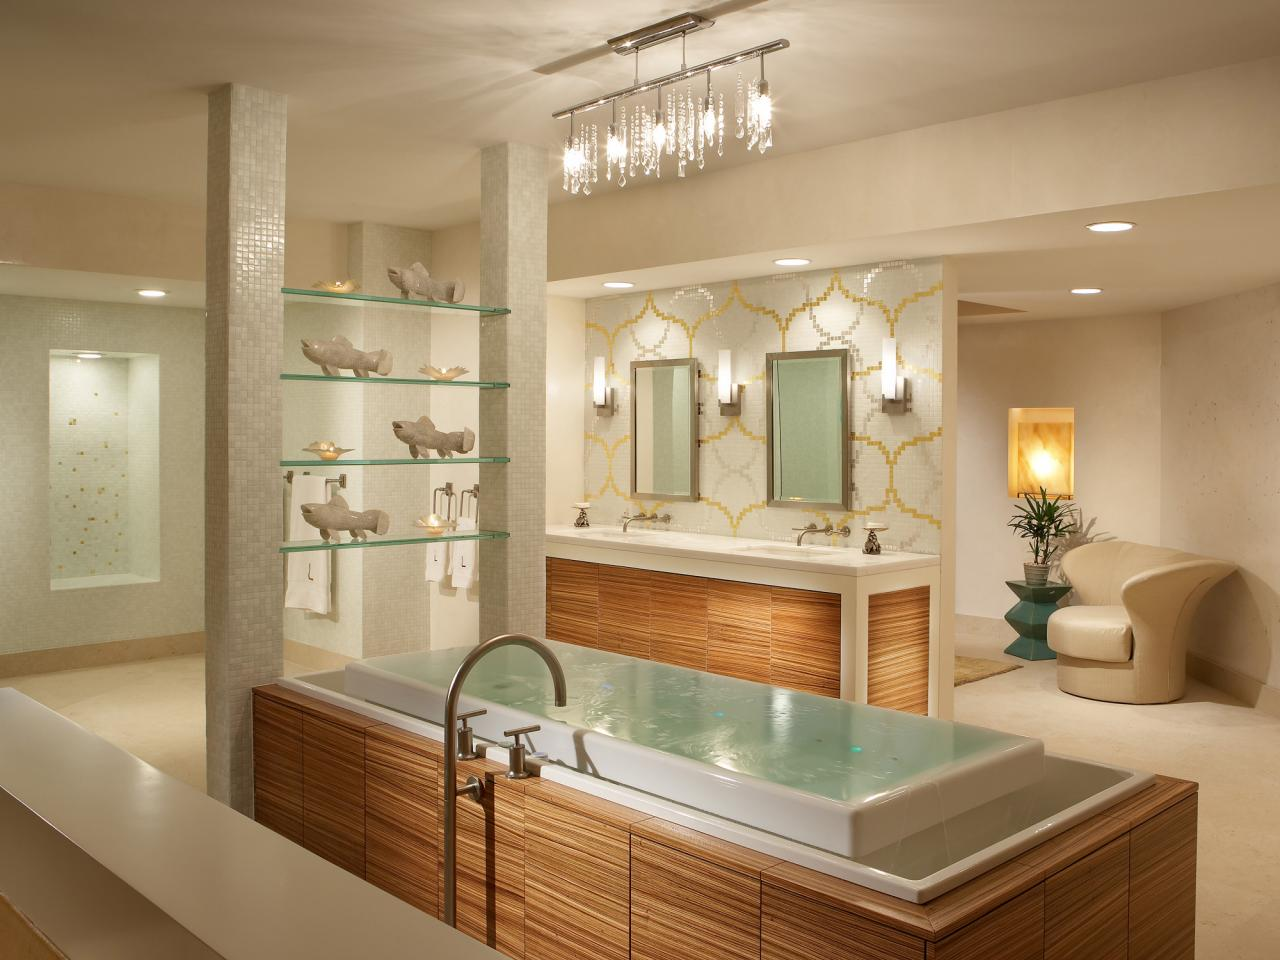 Choosing A Bathroom Layout HGTV